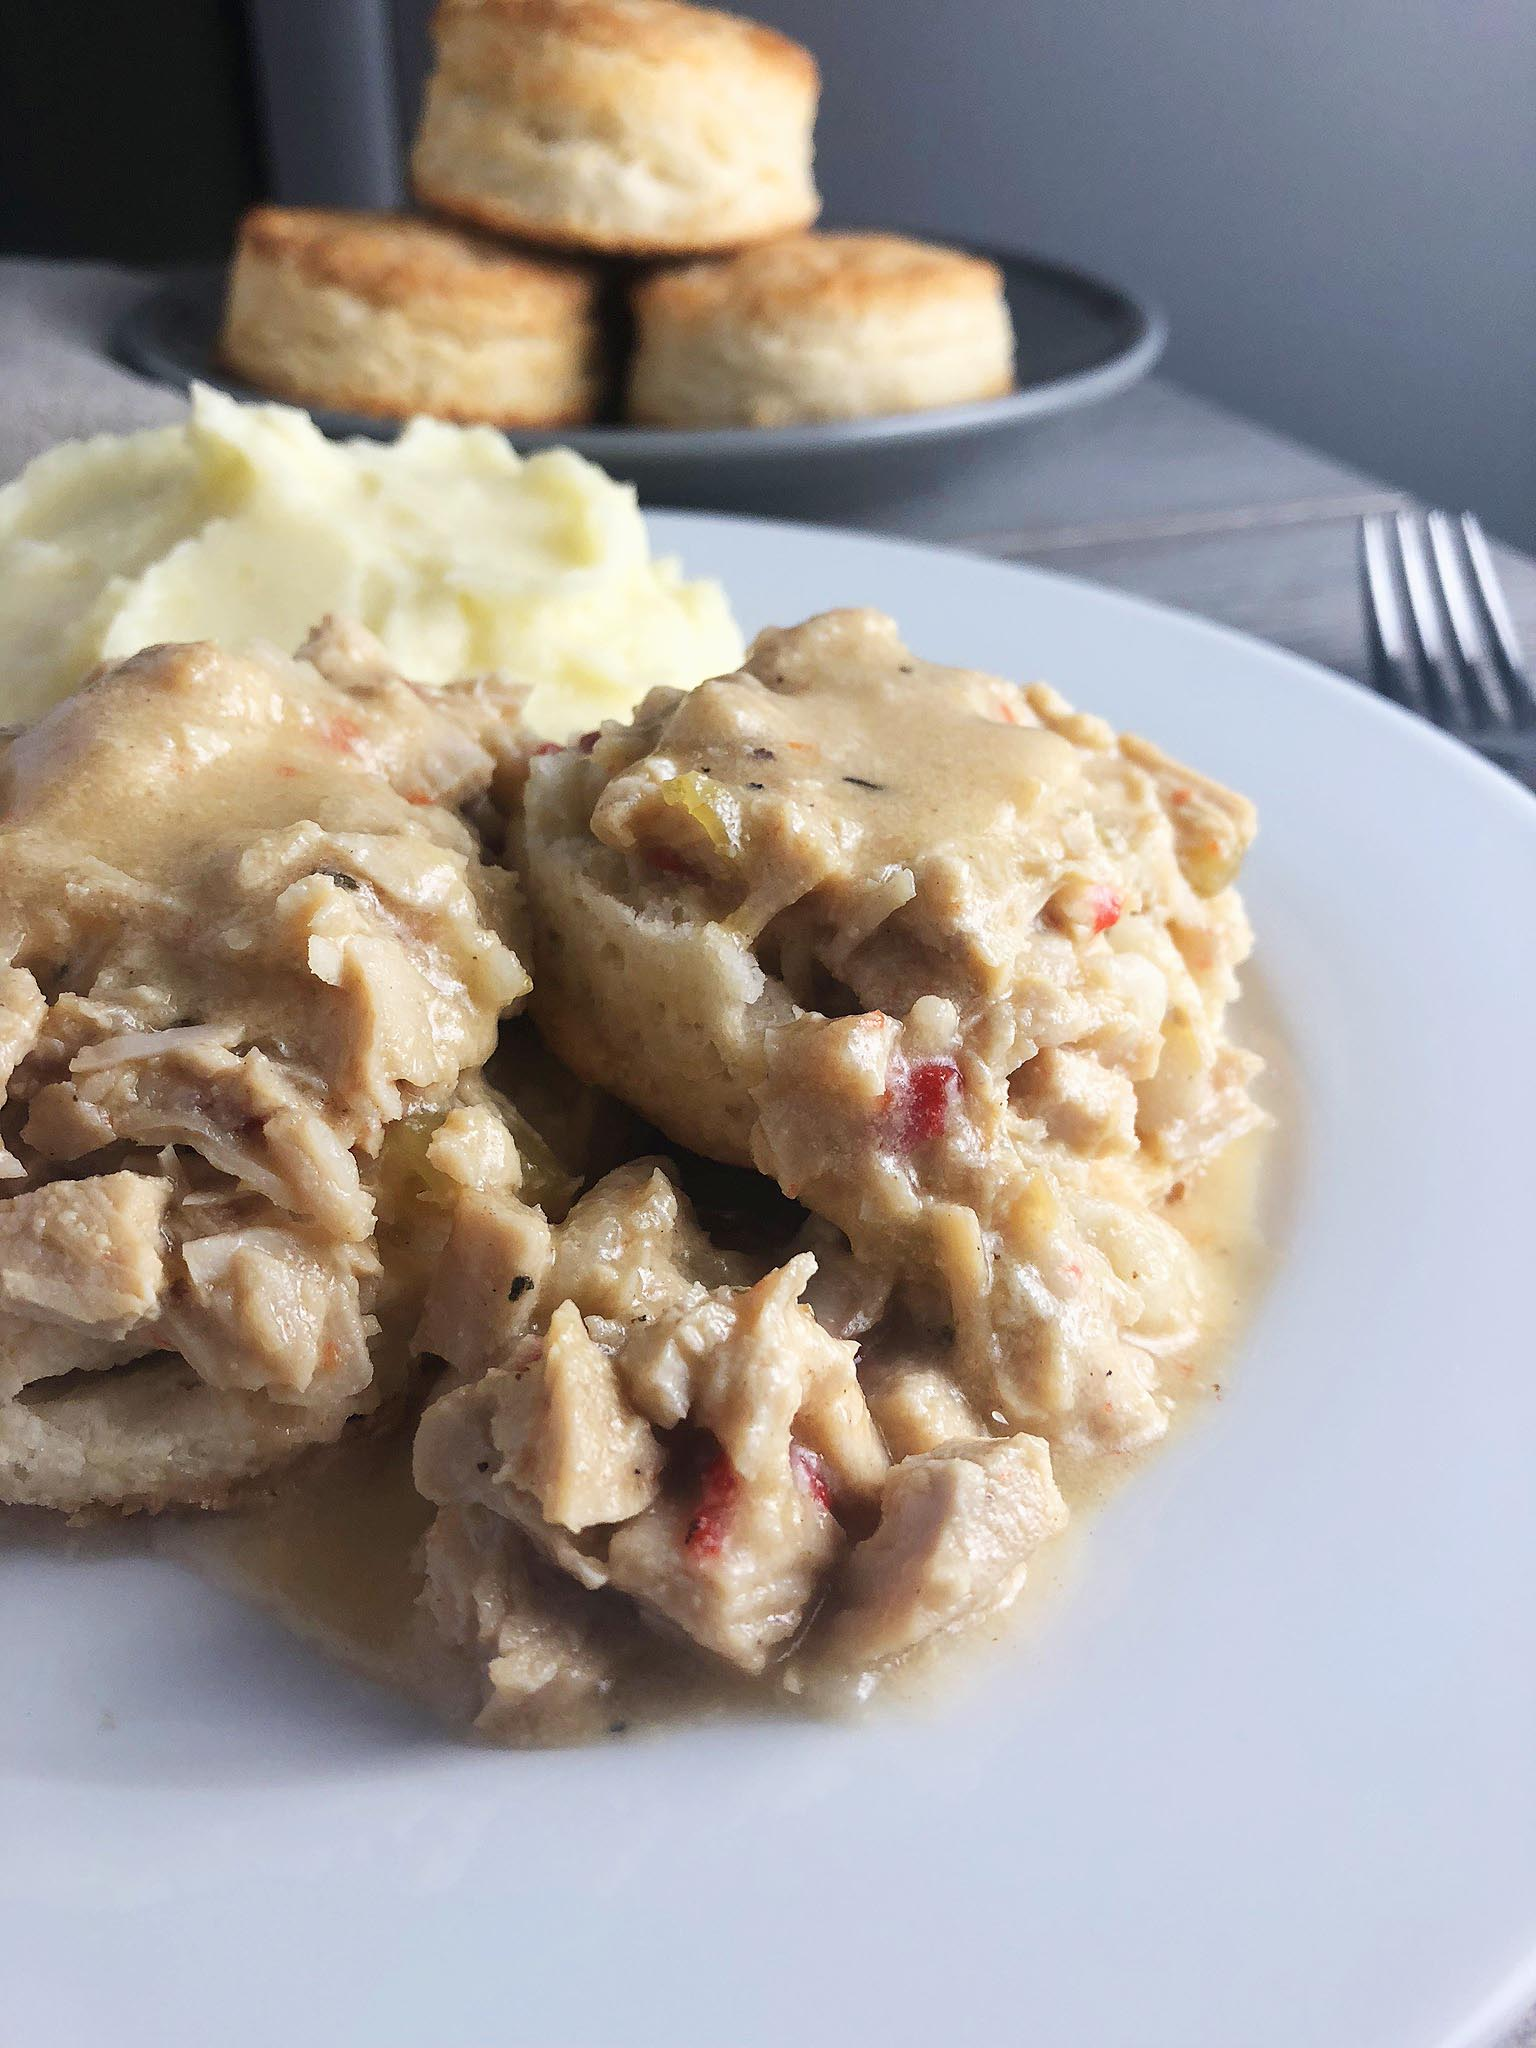 west-virginia-creamed-turkey-with-biscuits-and-mashed-potatoes.jpg